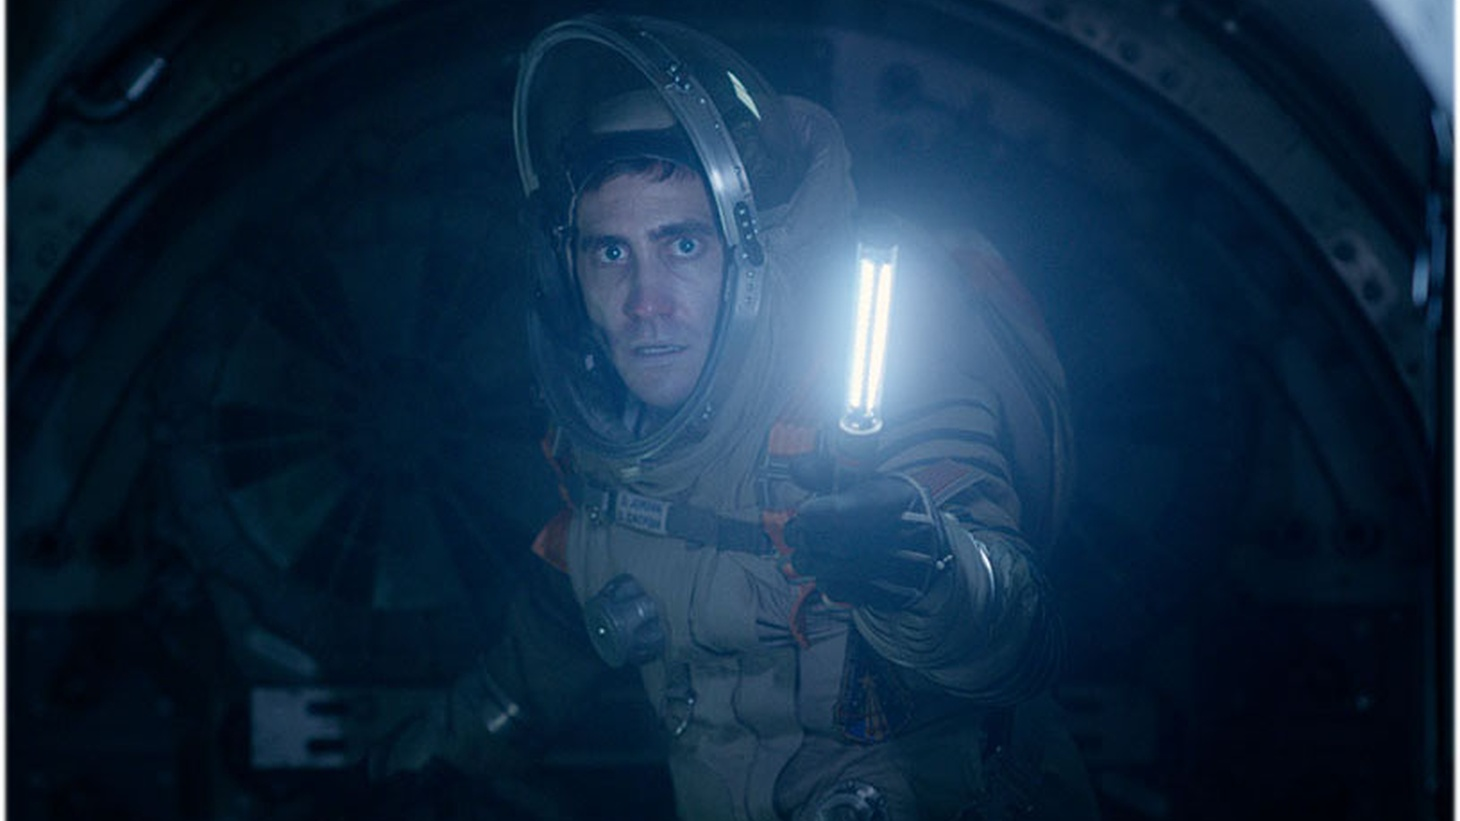 """Our critics look at the new space thriller """"Life;"""" a remake of the graphic novel """"Wilson;"""" and remakes of old TV shows """"Chips"""" and """"The Power Rangers.""""     (Photo courtesy ofSony Pictures)"""